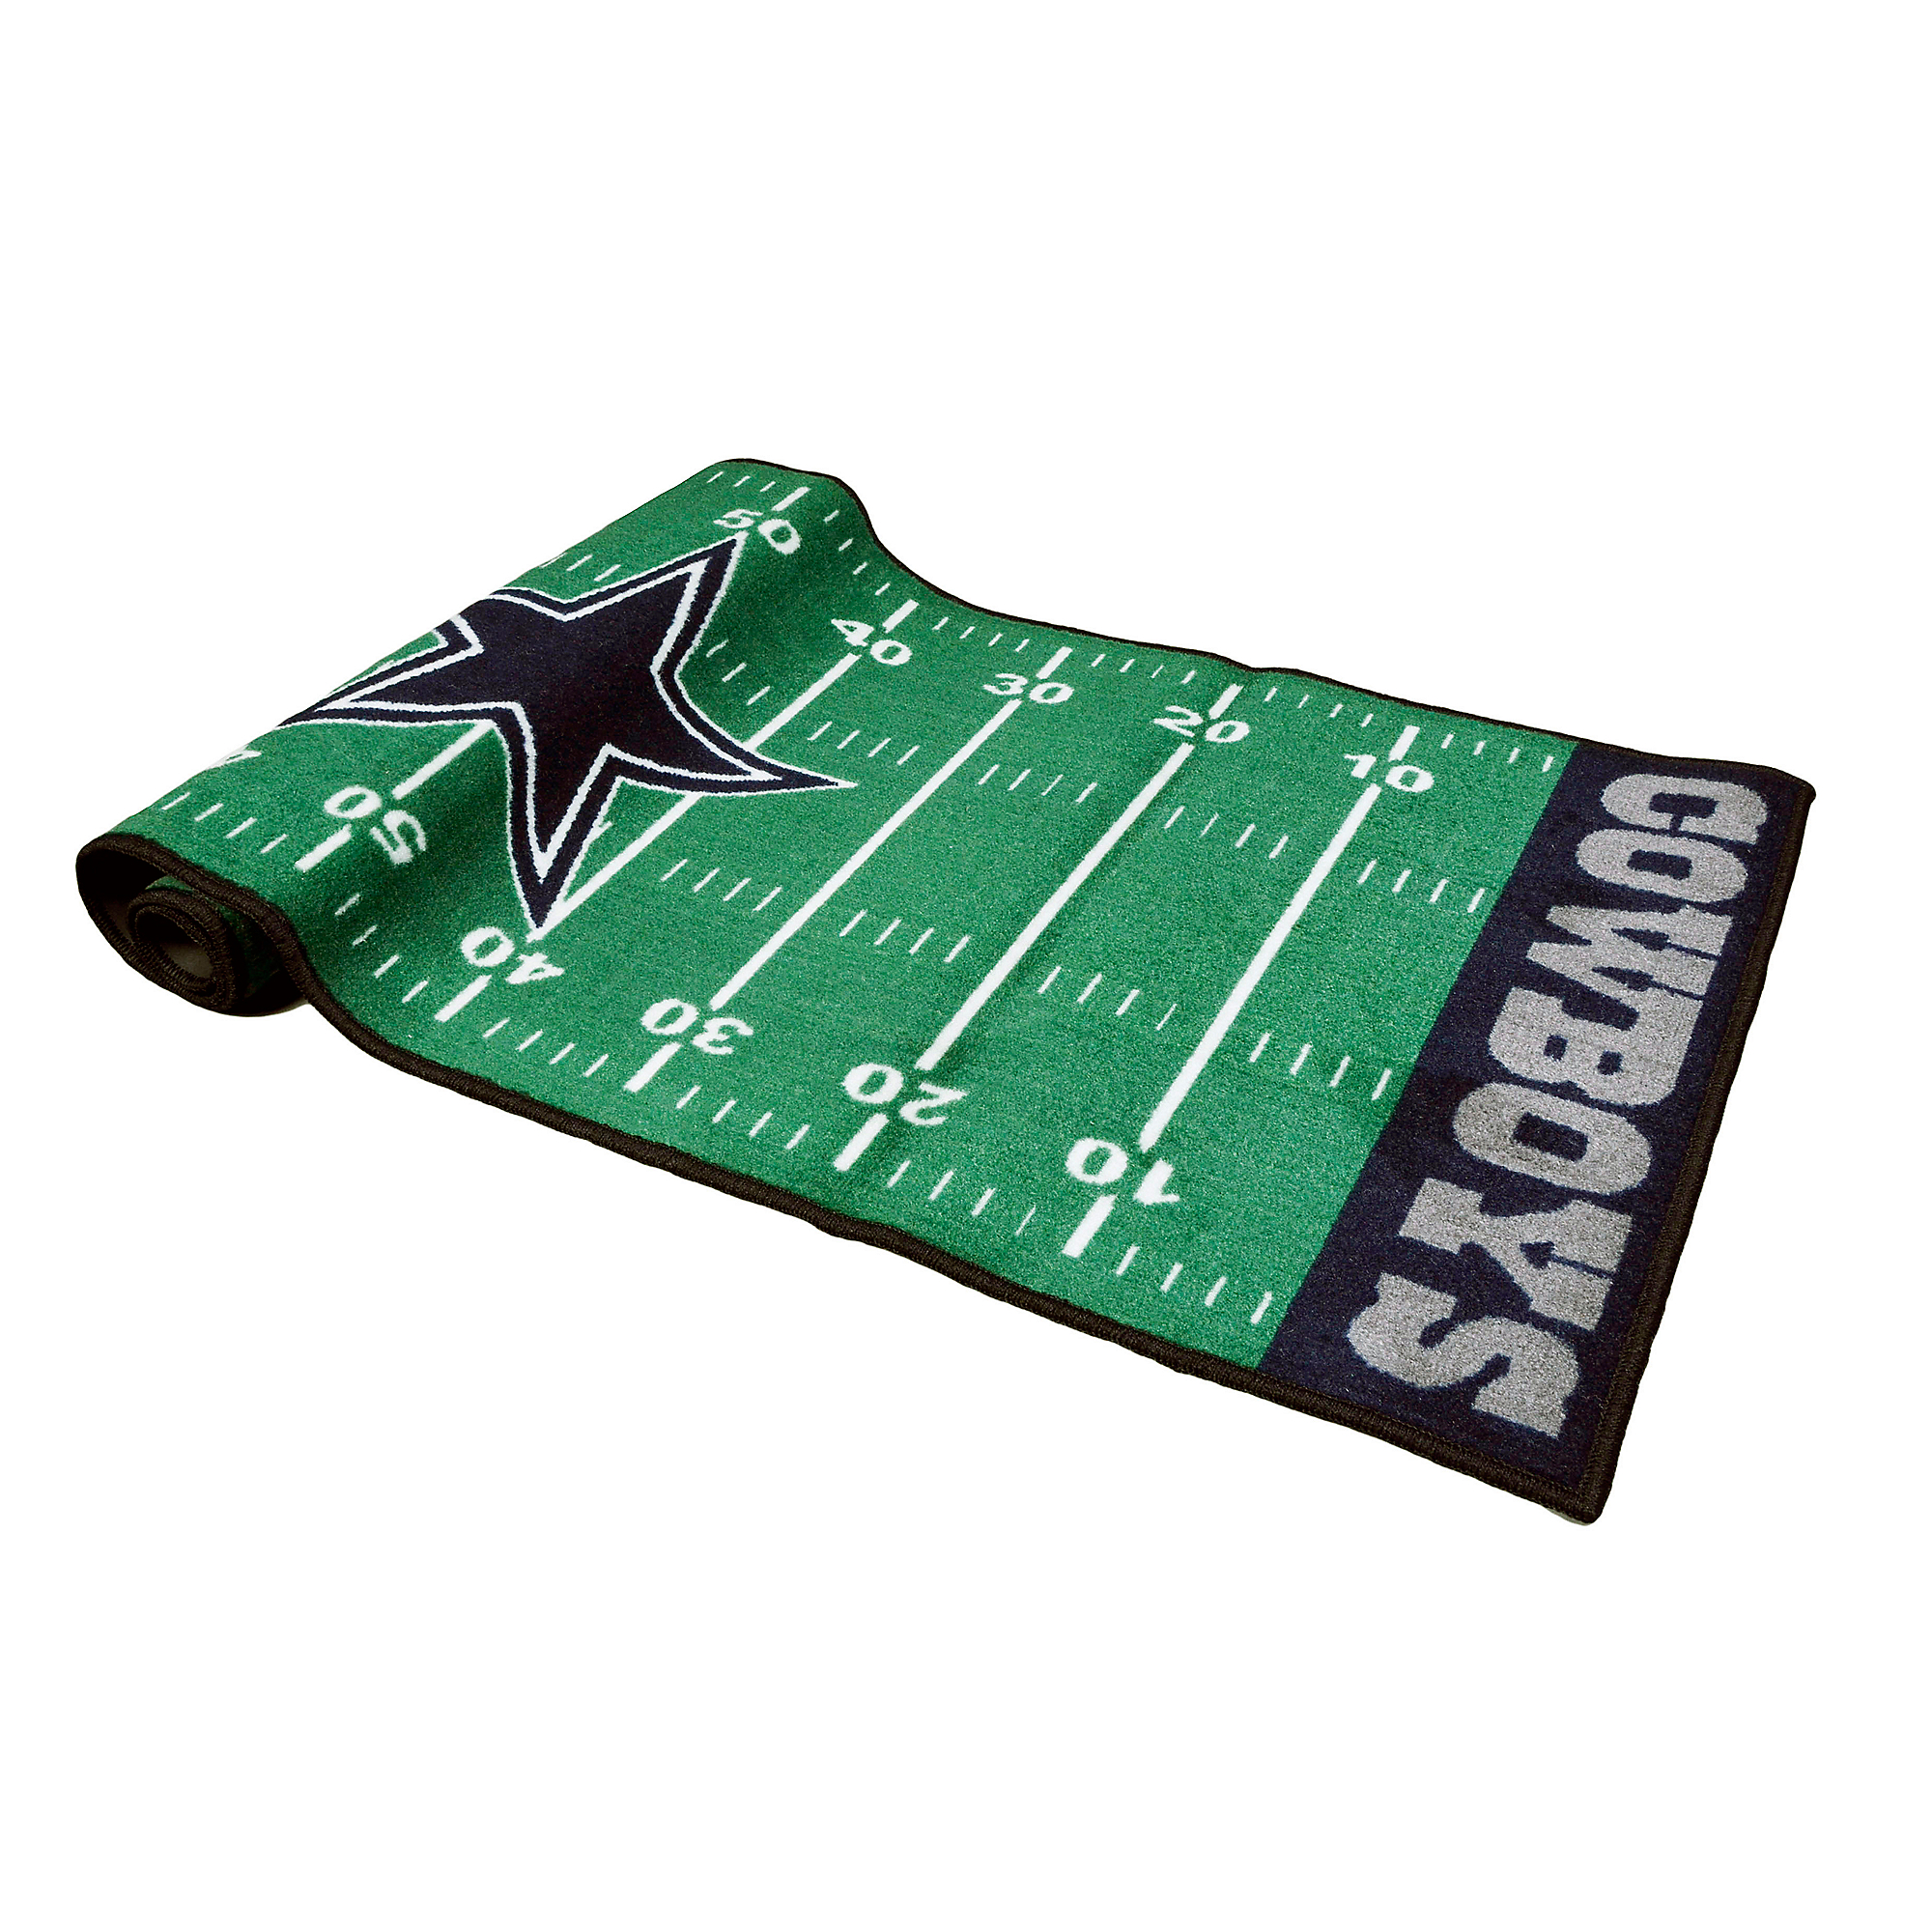 Dallas Cowboys Football Field Rug Dallas Cowboys Pro Shop